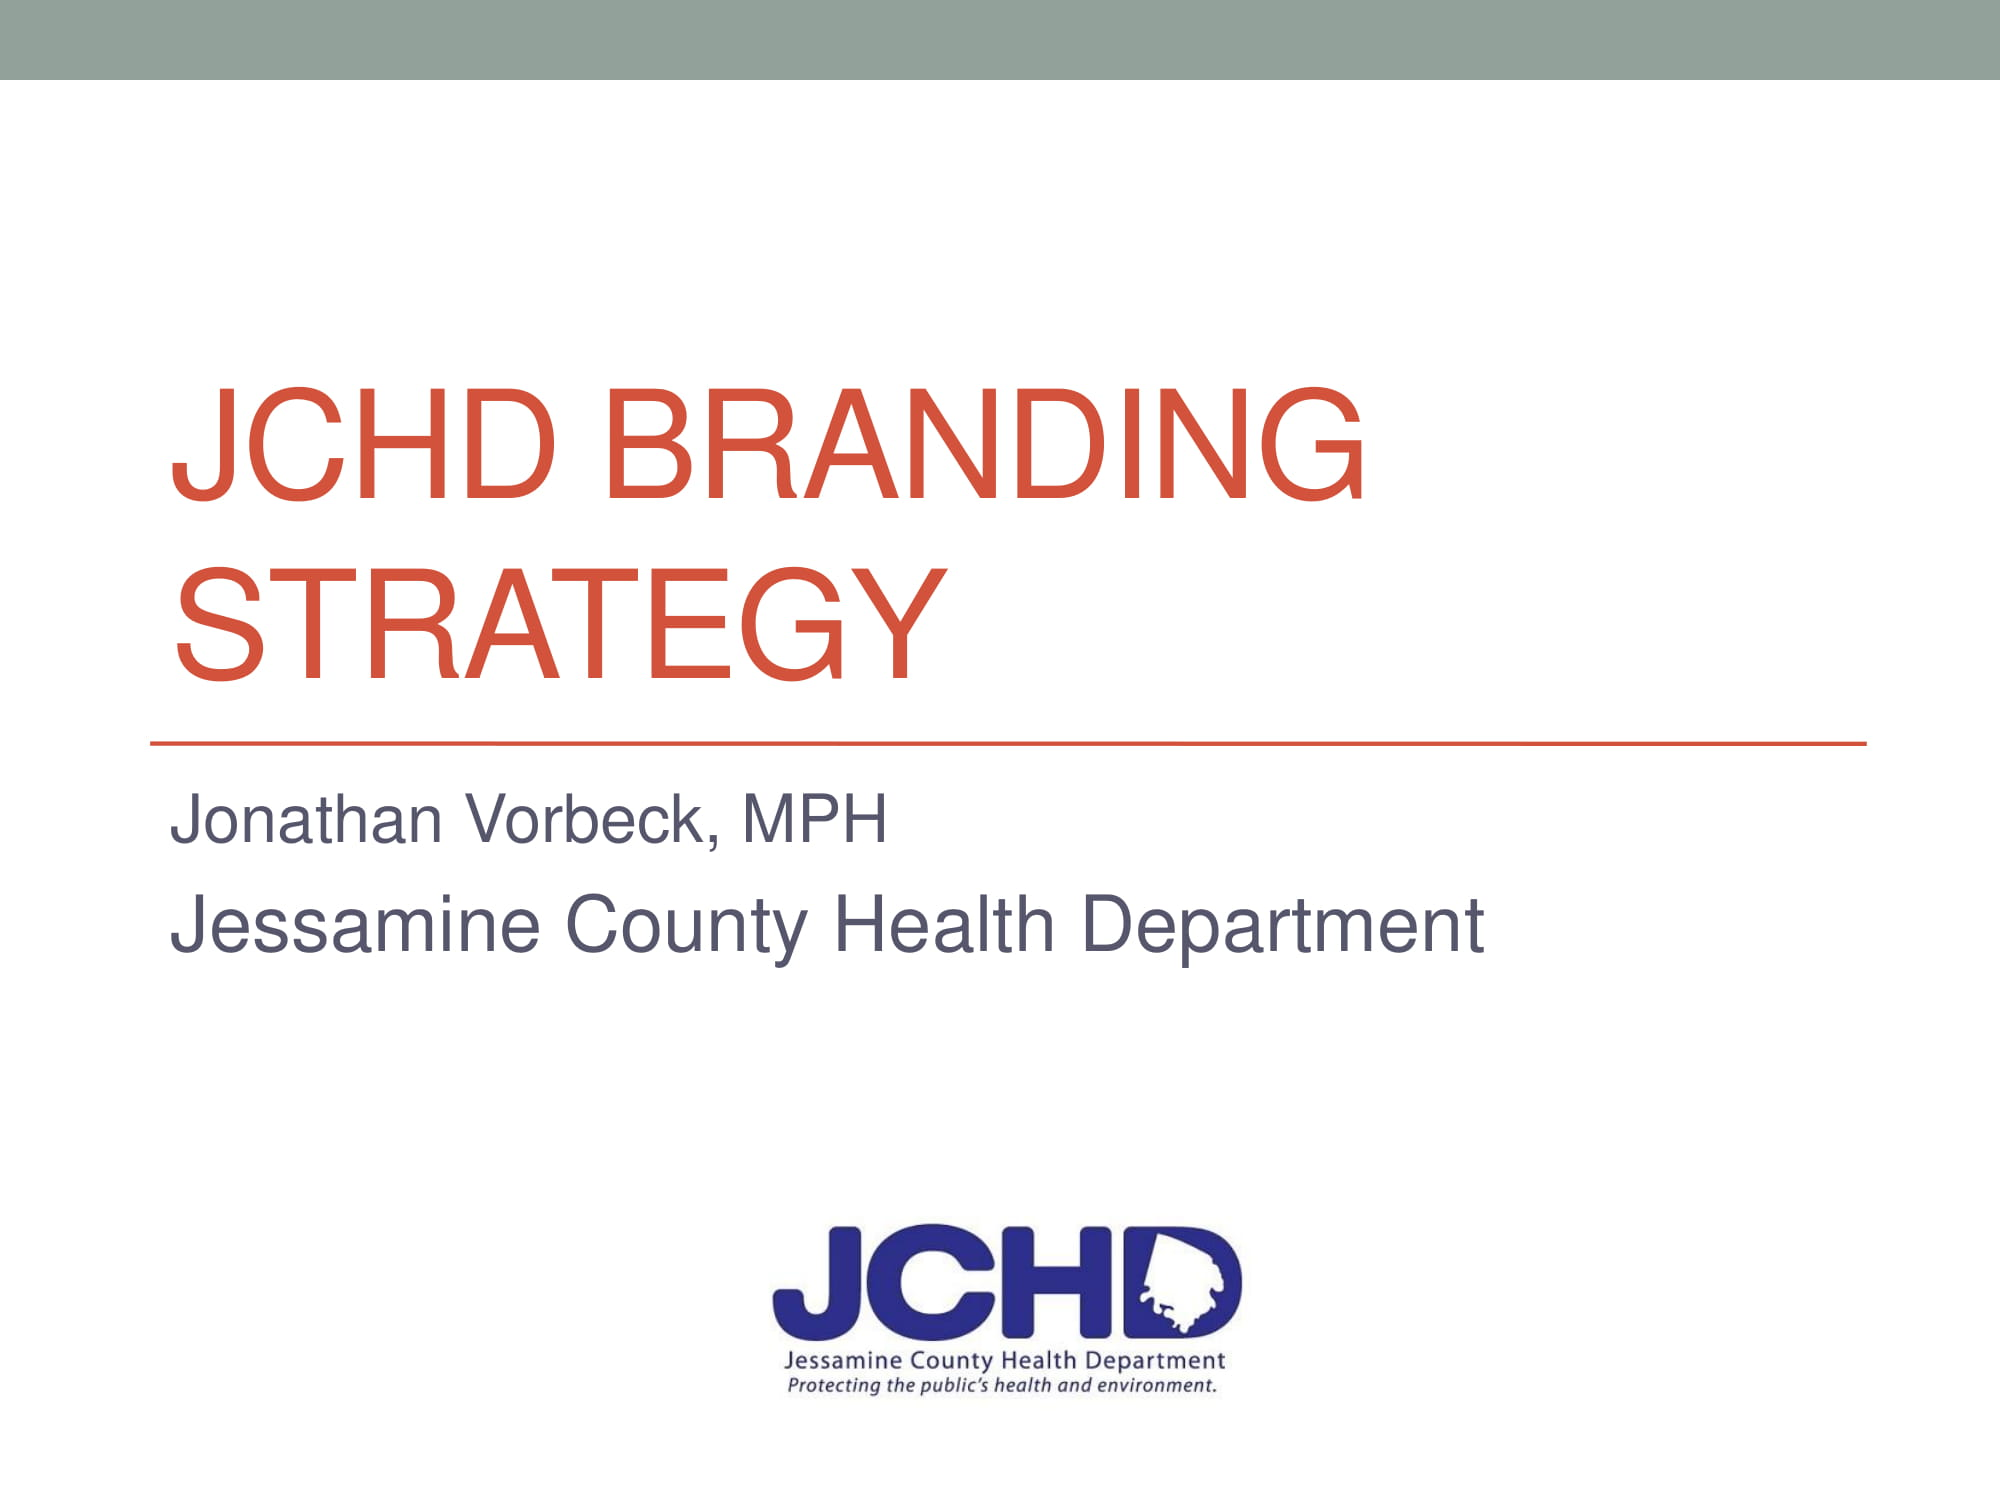 health department branding strategy plan example